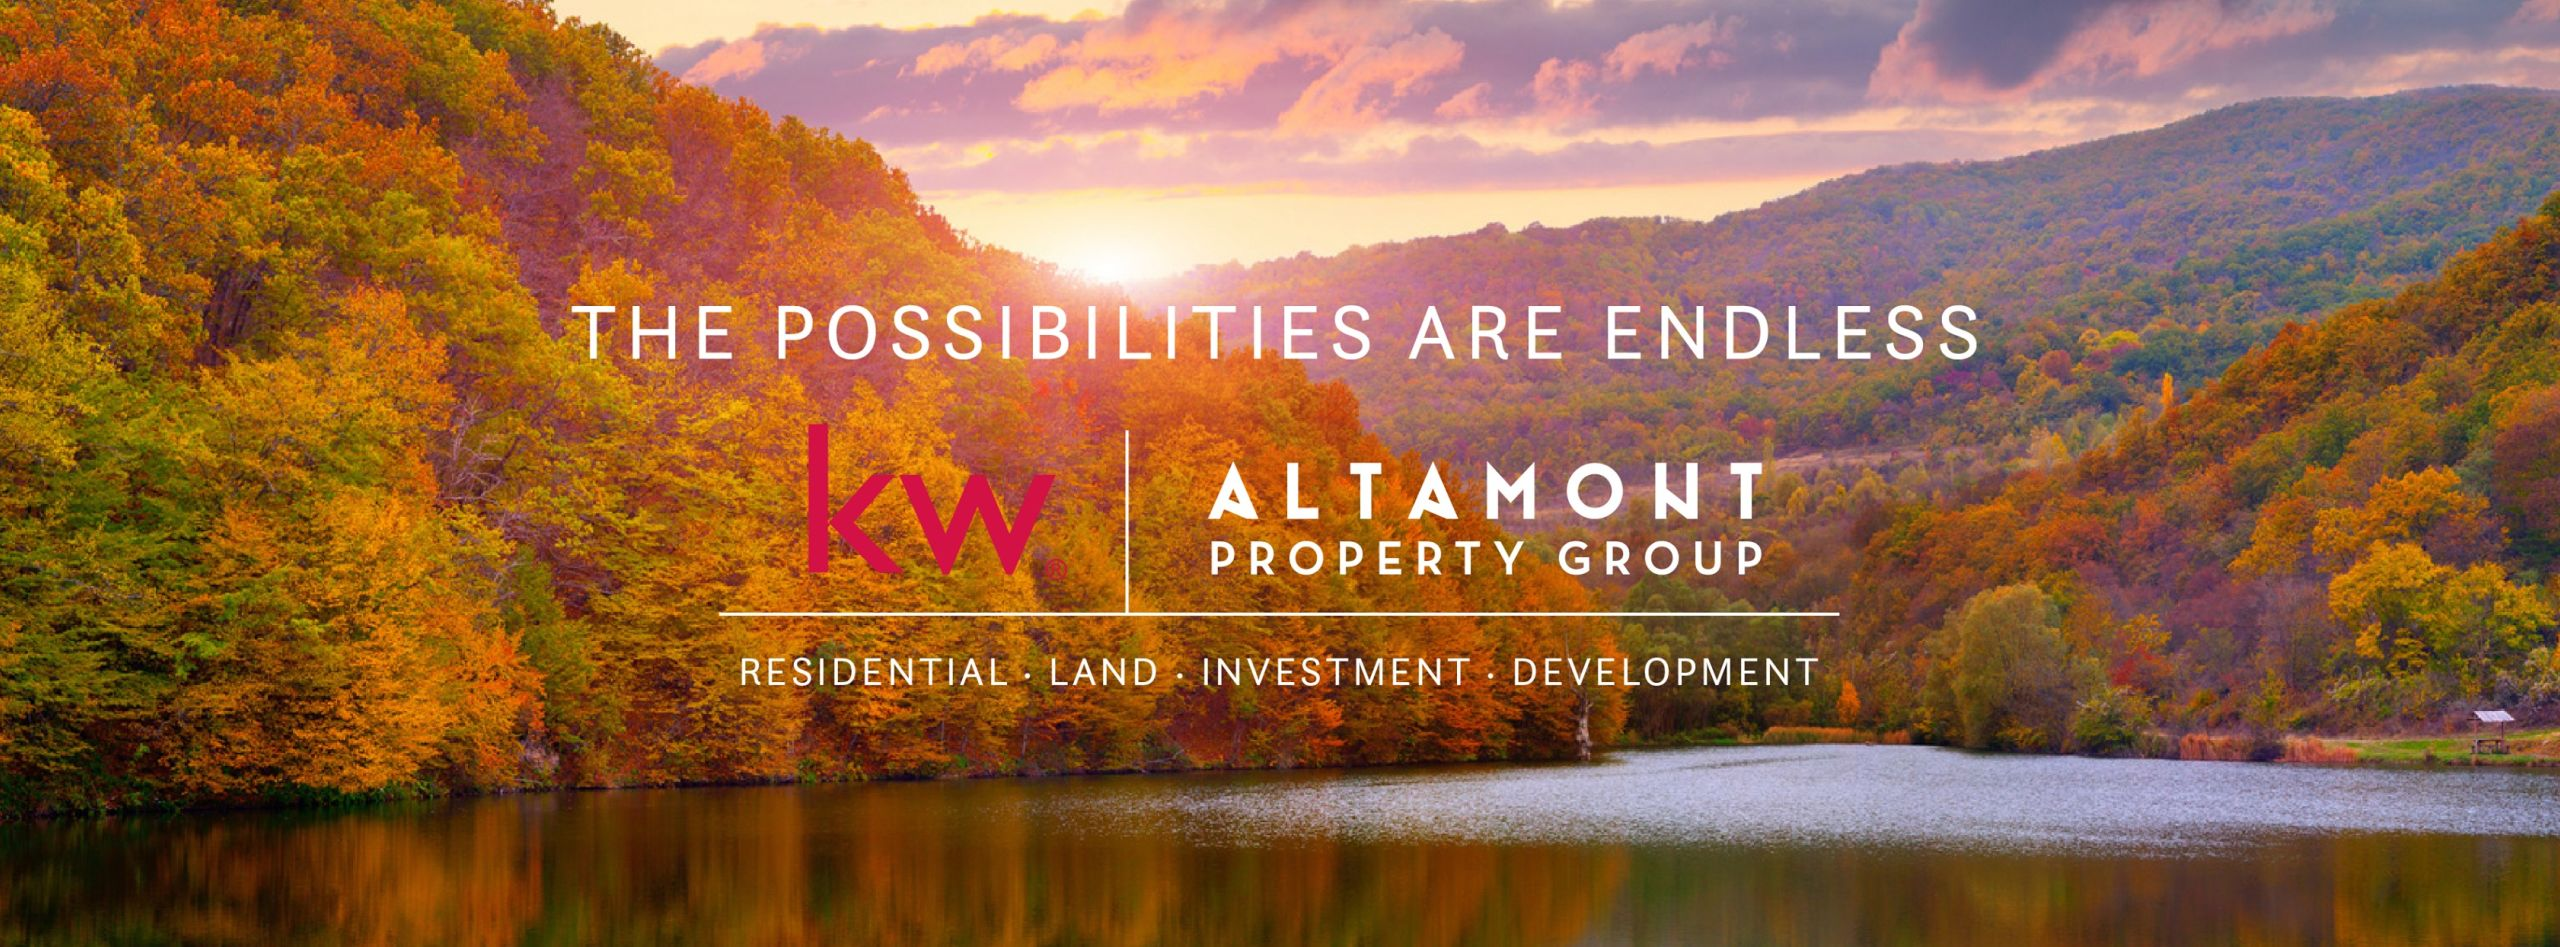 Altamont Property Group - Asheville NC